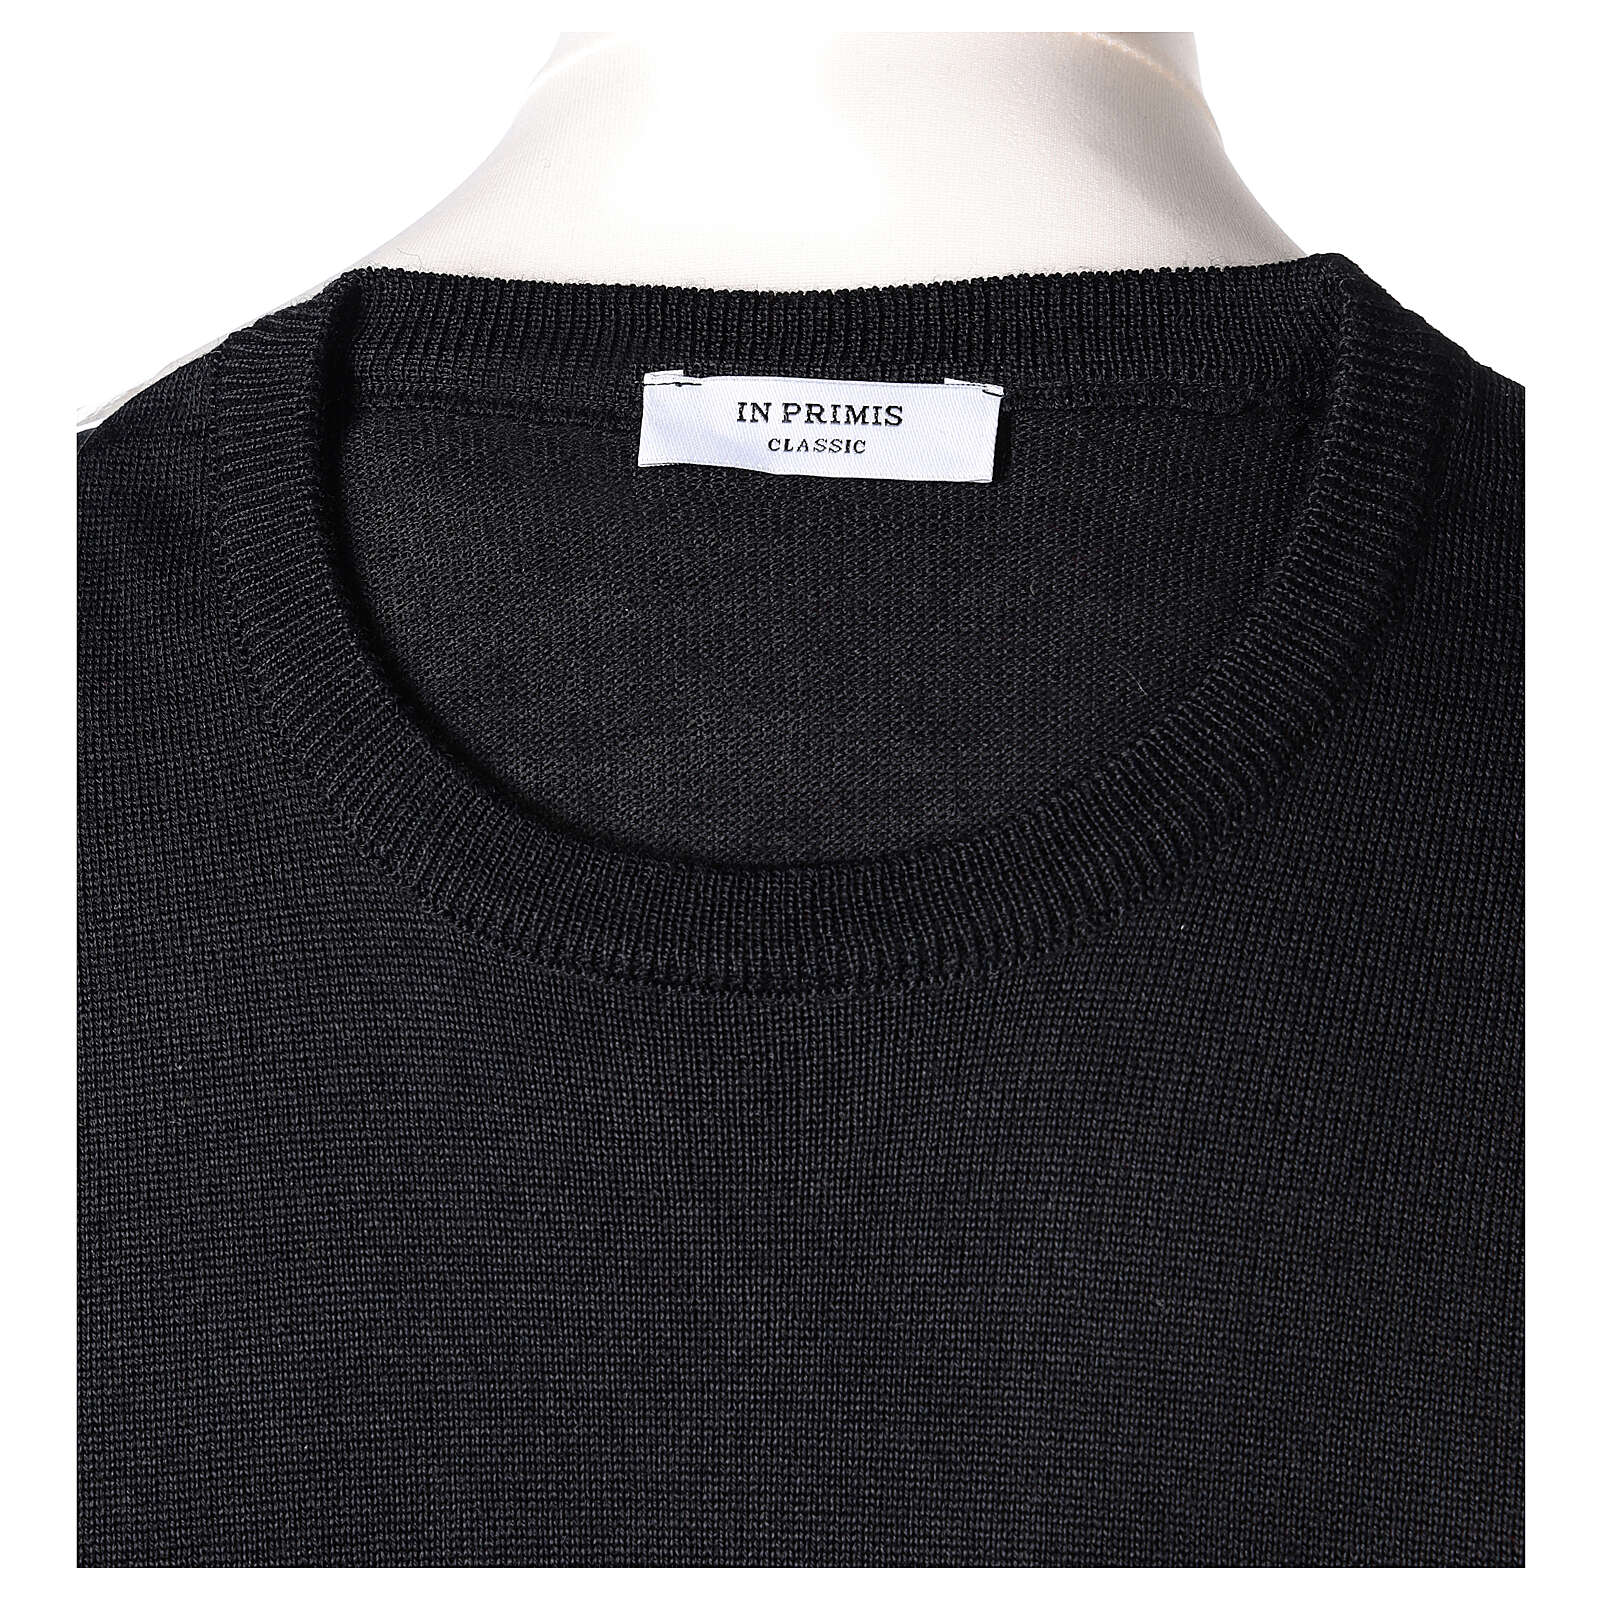 Crew neck black plain knitted jumper for clergymen 50% acrylic 50% merino wool In Primis 4